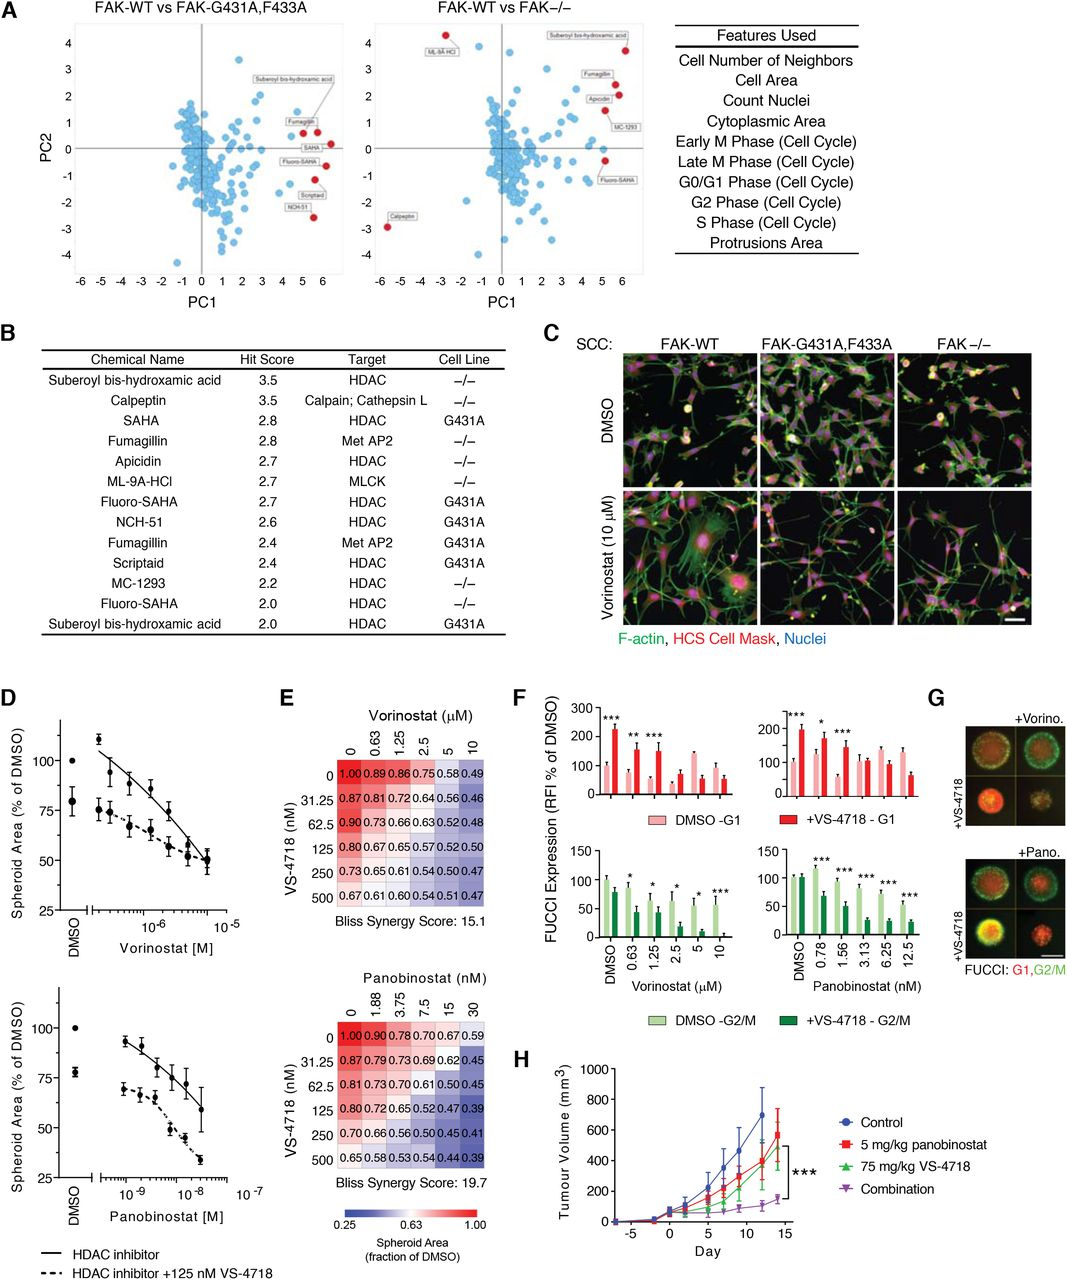 A Synergistic Anti-Cancer FAK and HDAC Inhibitor Combination